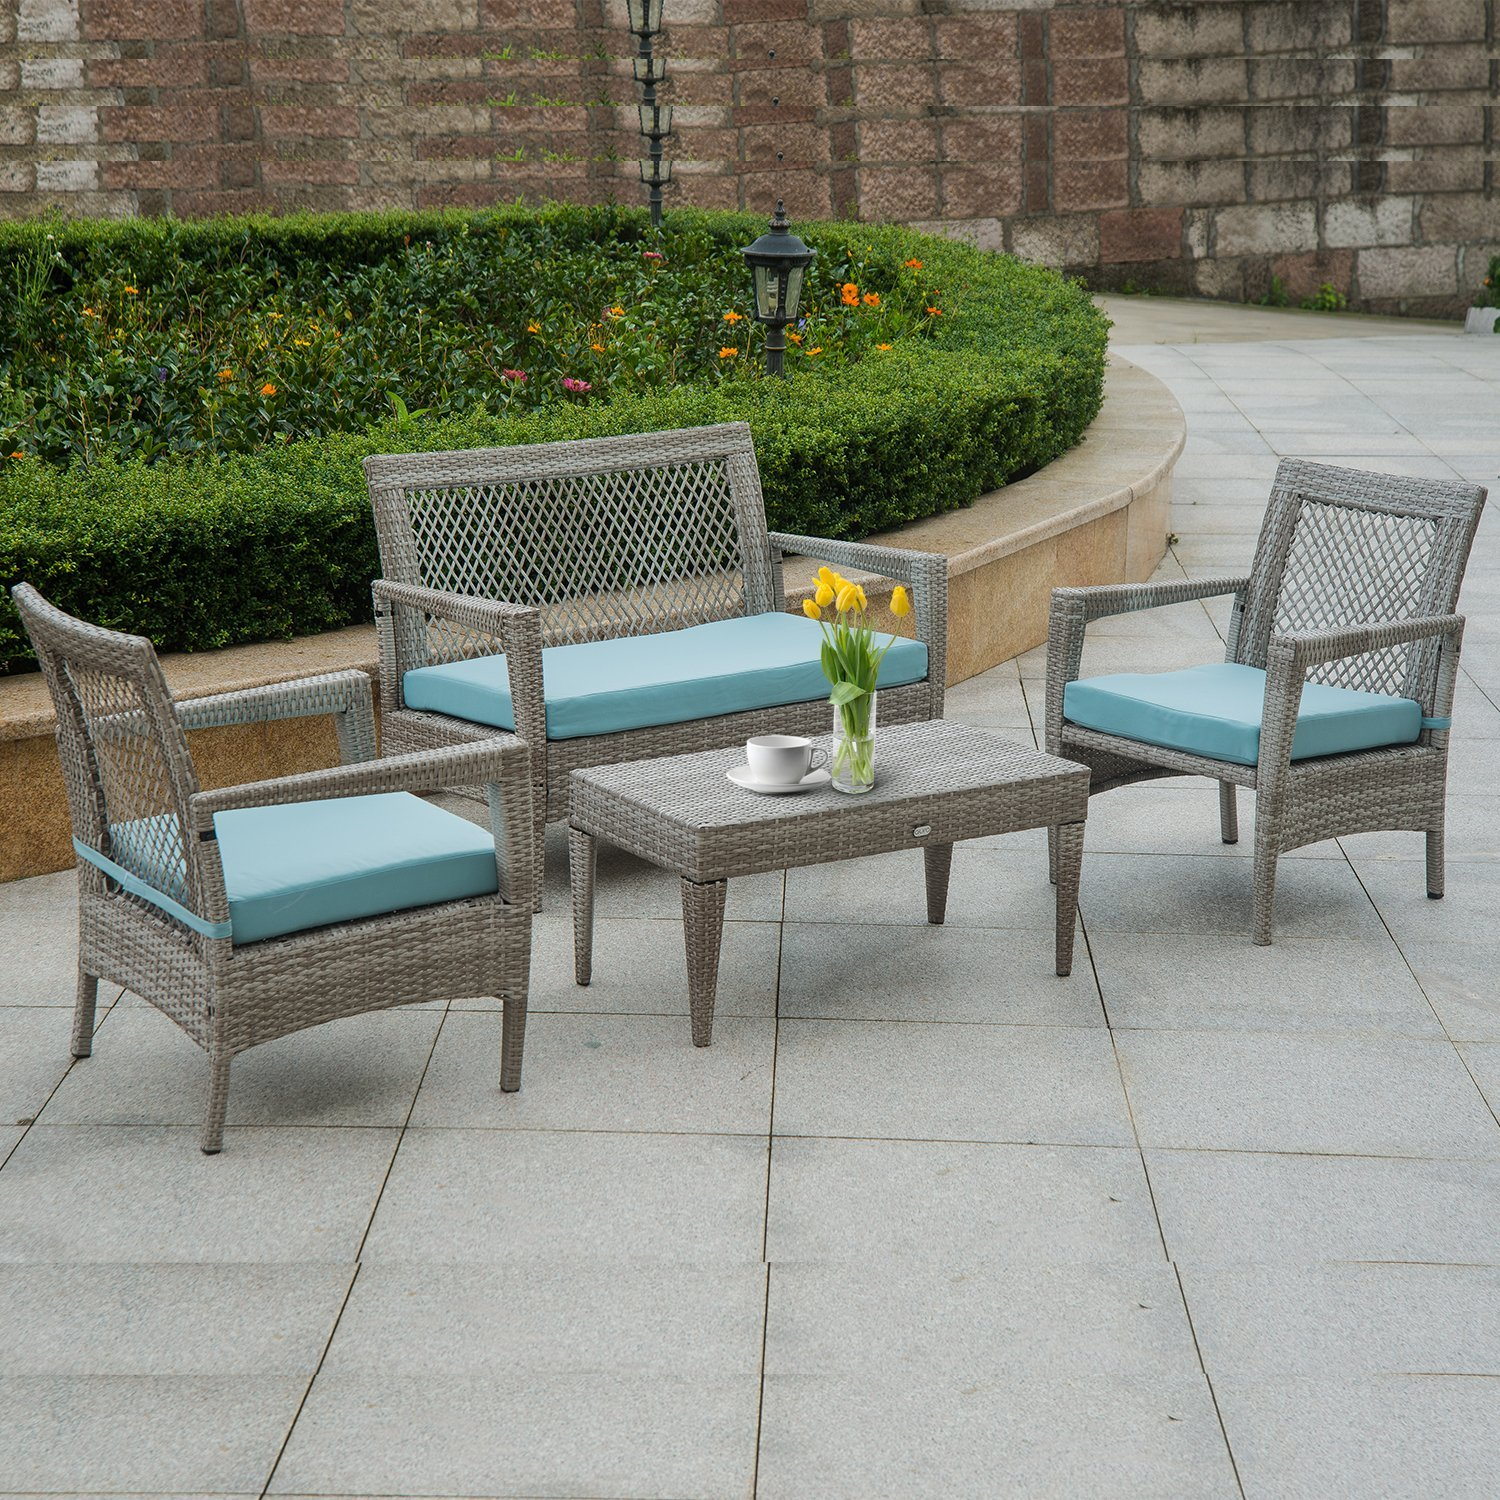 Surprising Auro Brisbane Outdoor Furniture 4 Piece Rattan Patio Set All Weather Brown Wicker Bistro Set With 2 Water Resistant Blue Olefin Cushioned Chairs Caraccident5 Cool Chair Designs And Ideas Caraccident5Info